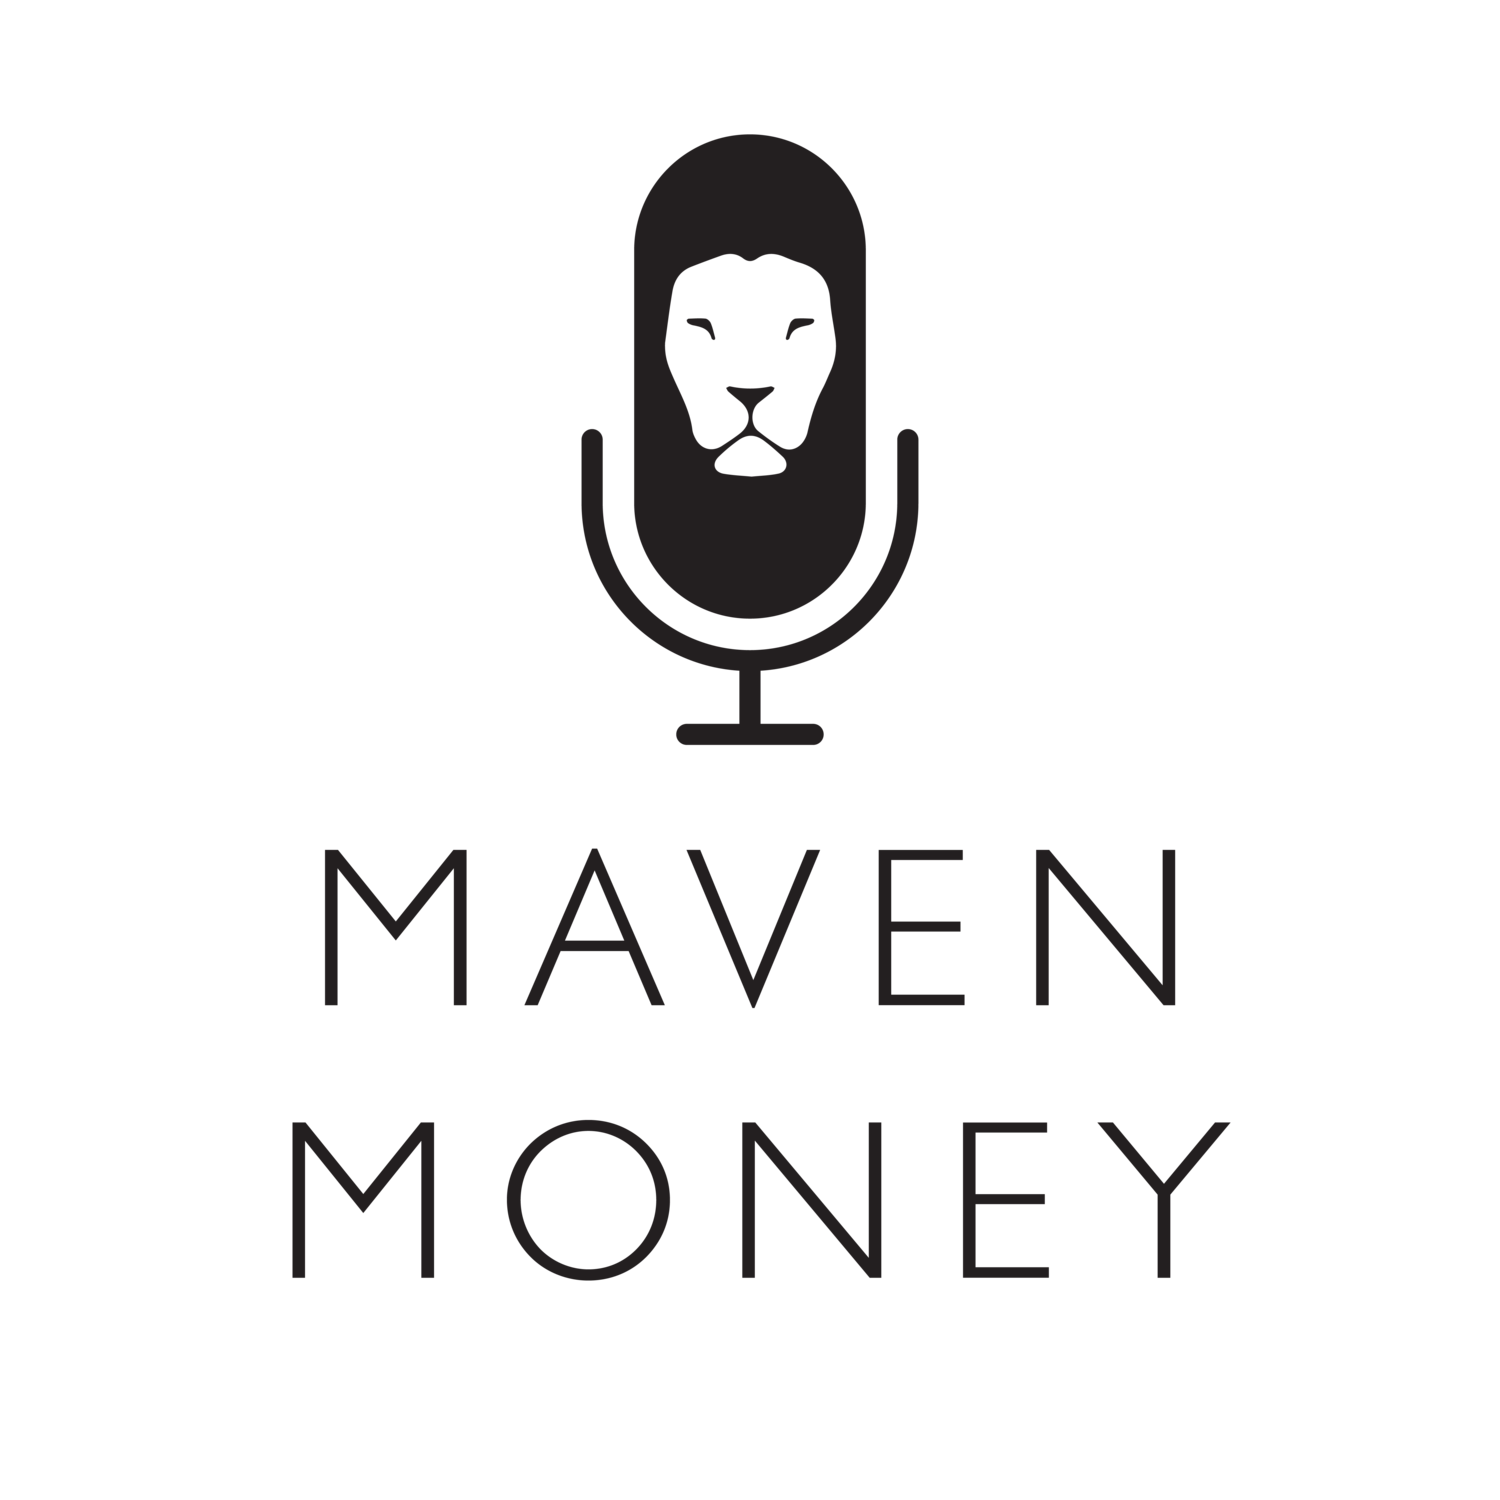 Maven Money